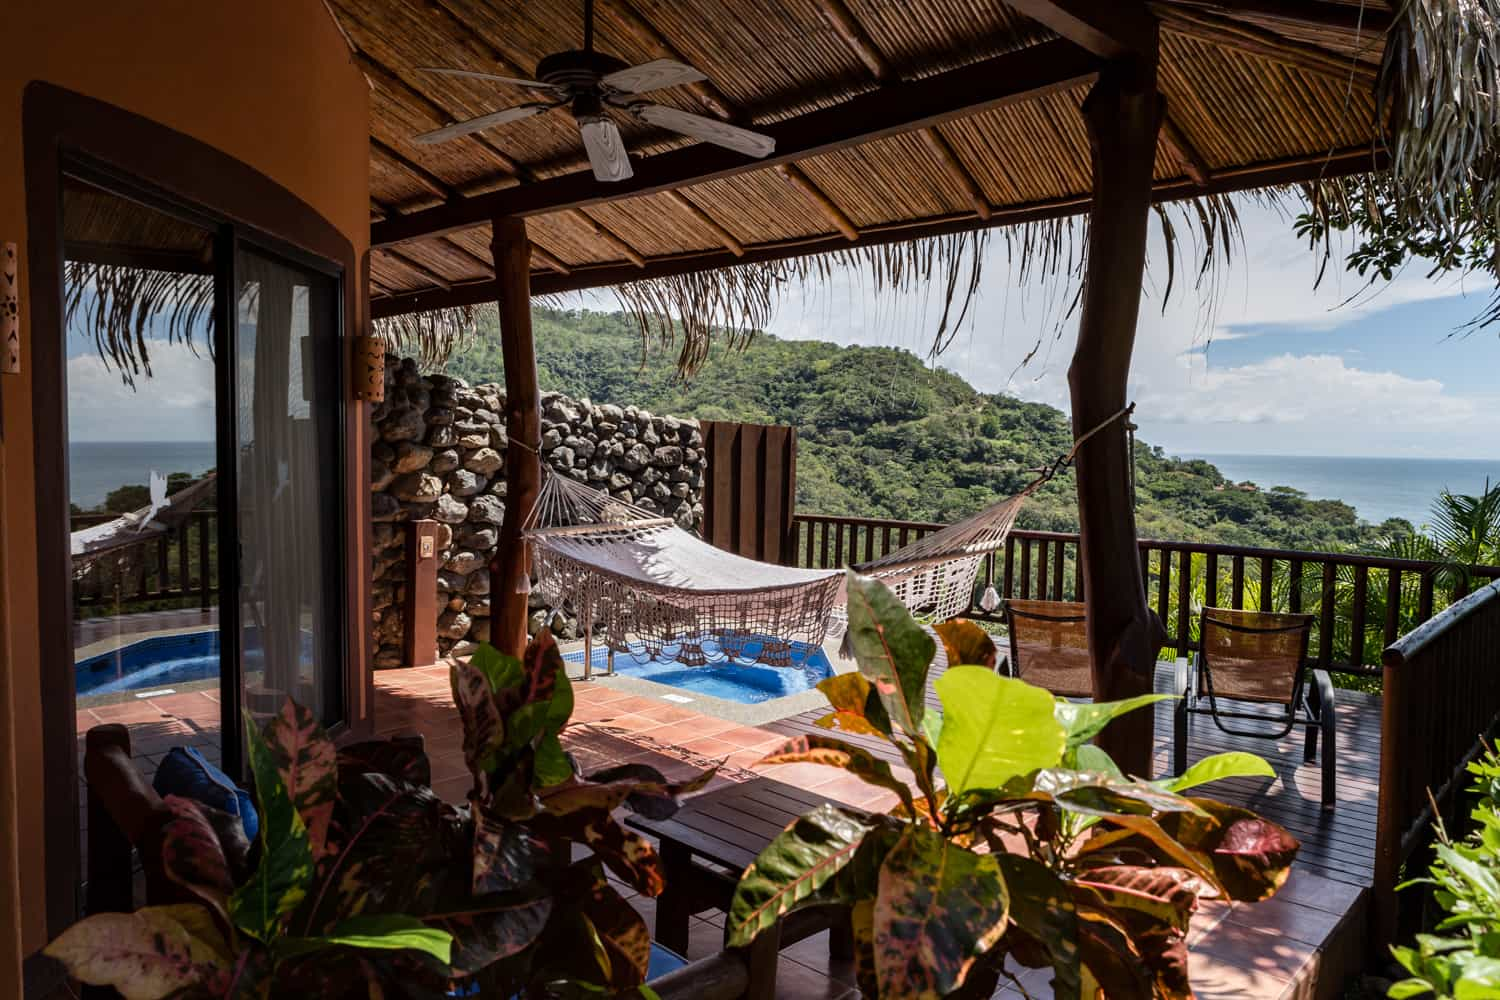 Honeymoon suite terrace with hot tub and view of ocean.